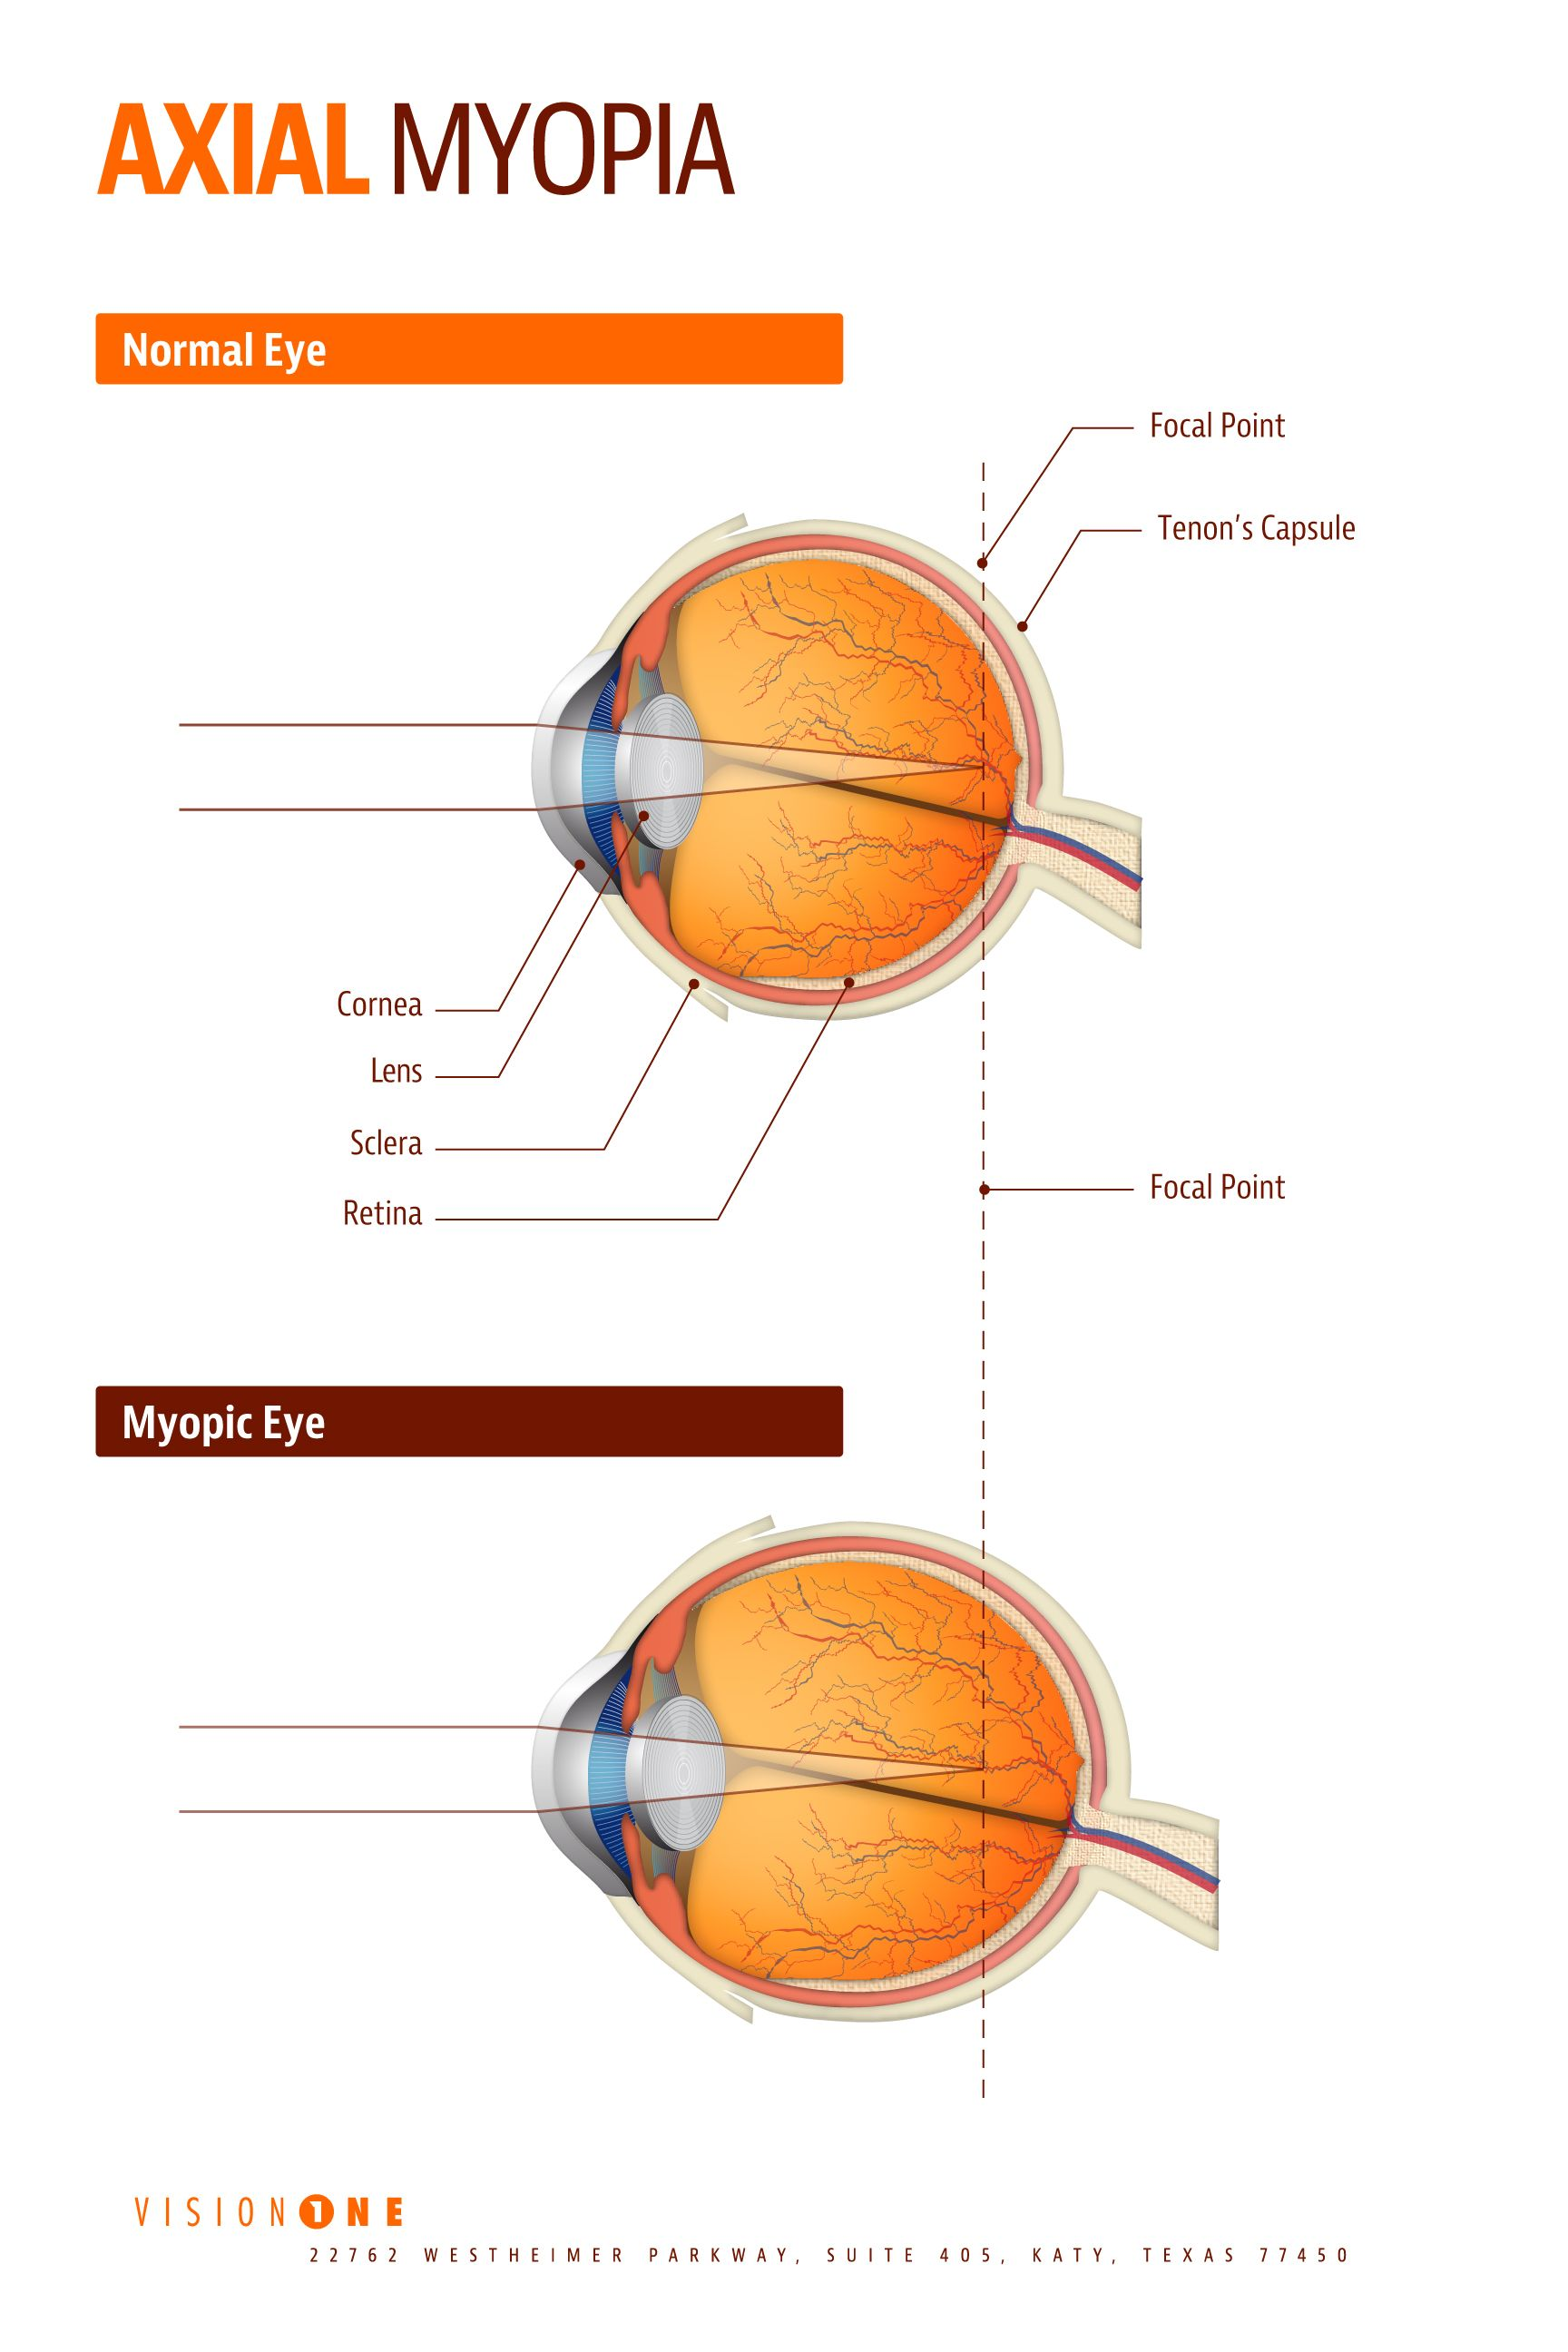 medium resolution of image result for high axial myopia